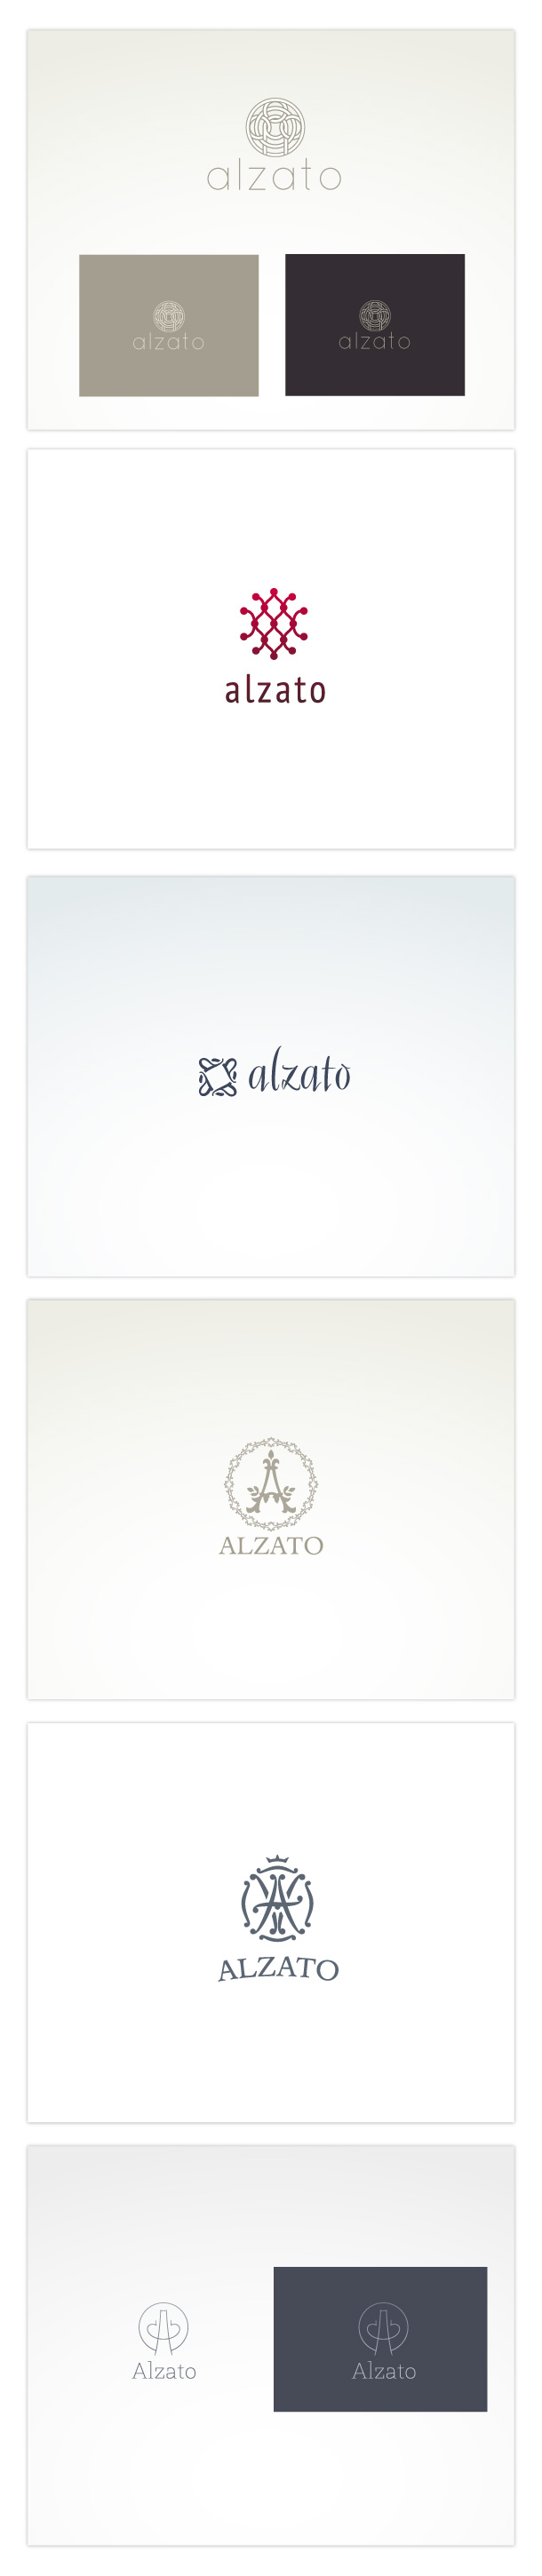 Alzato, other logo versions.